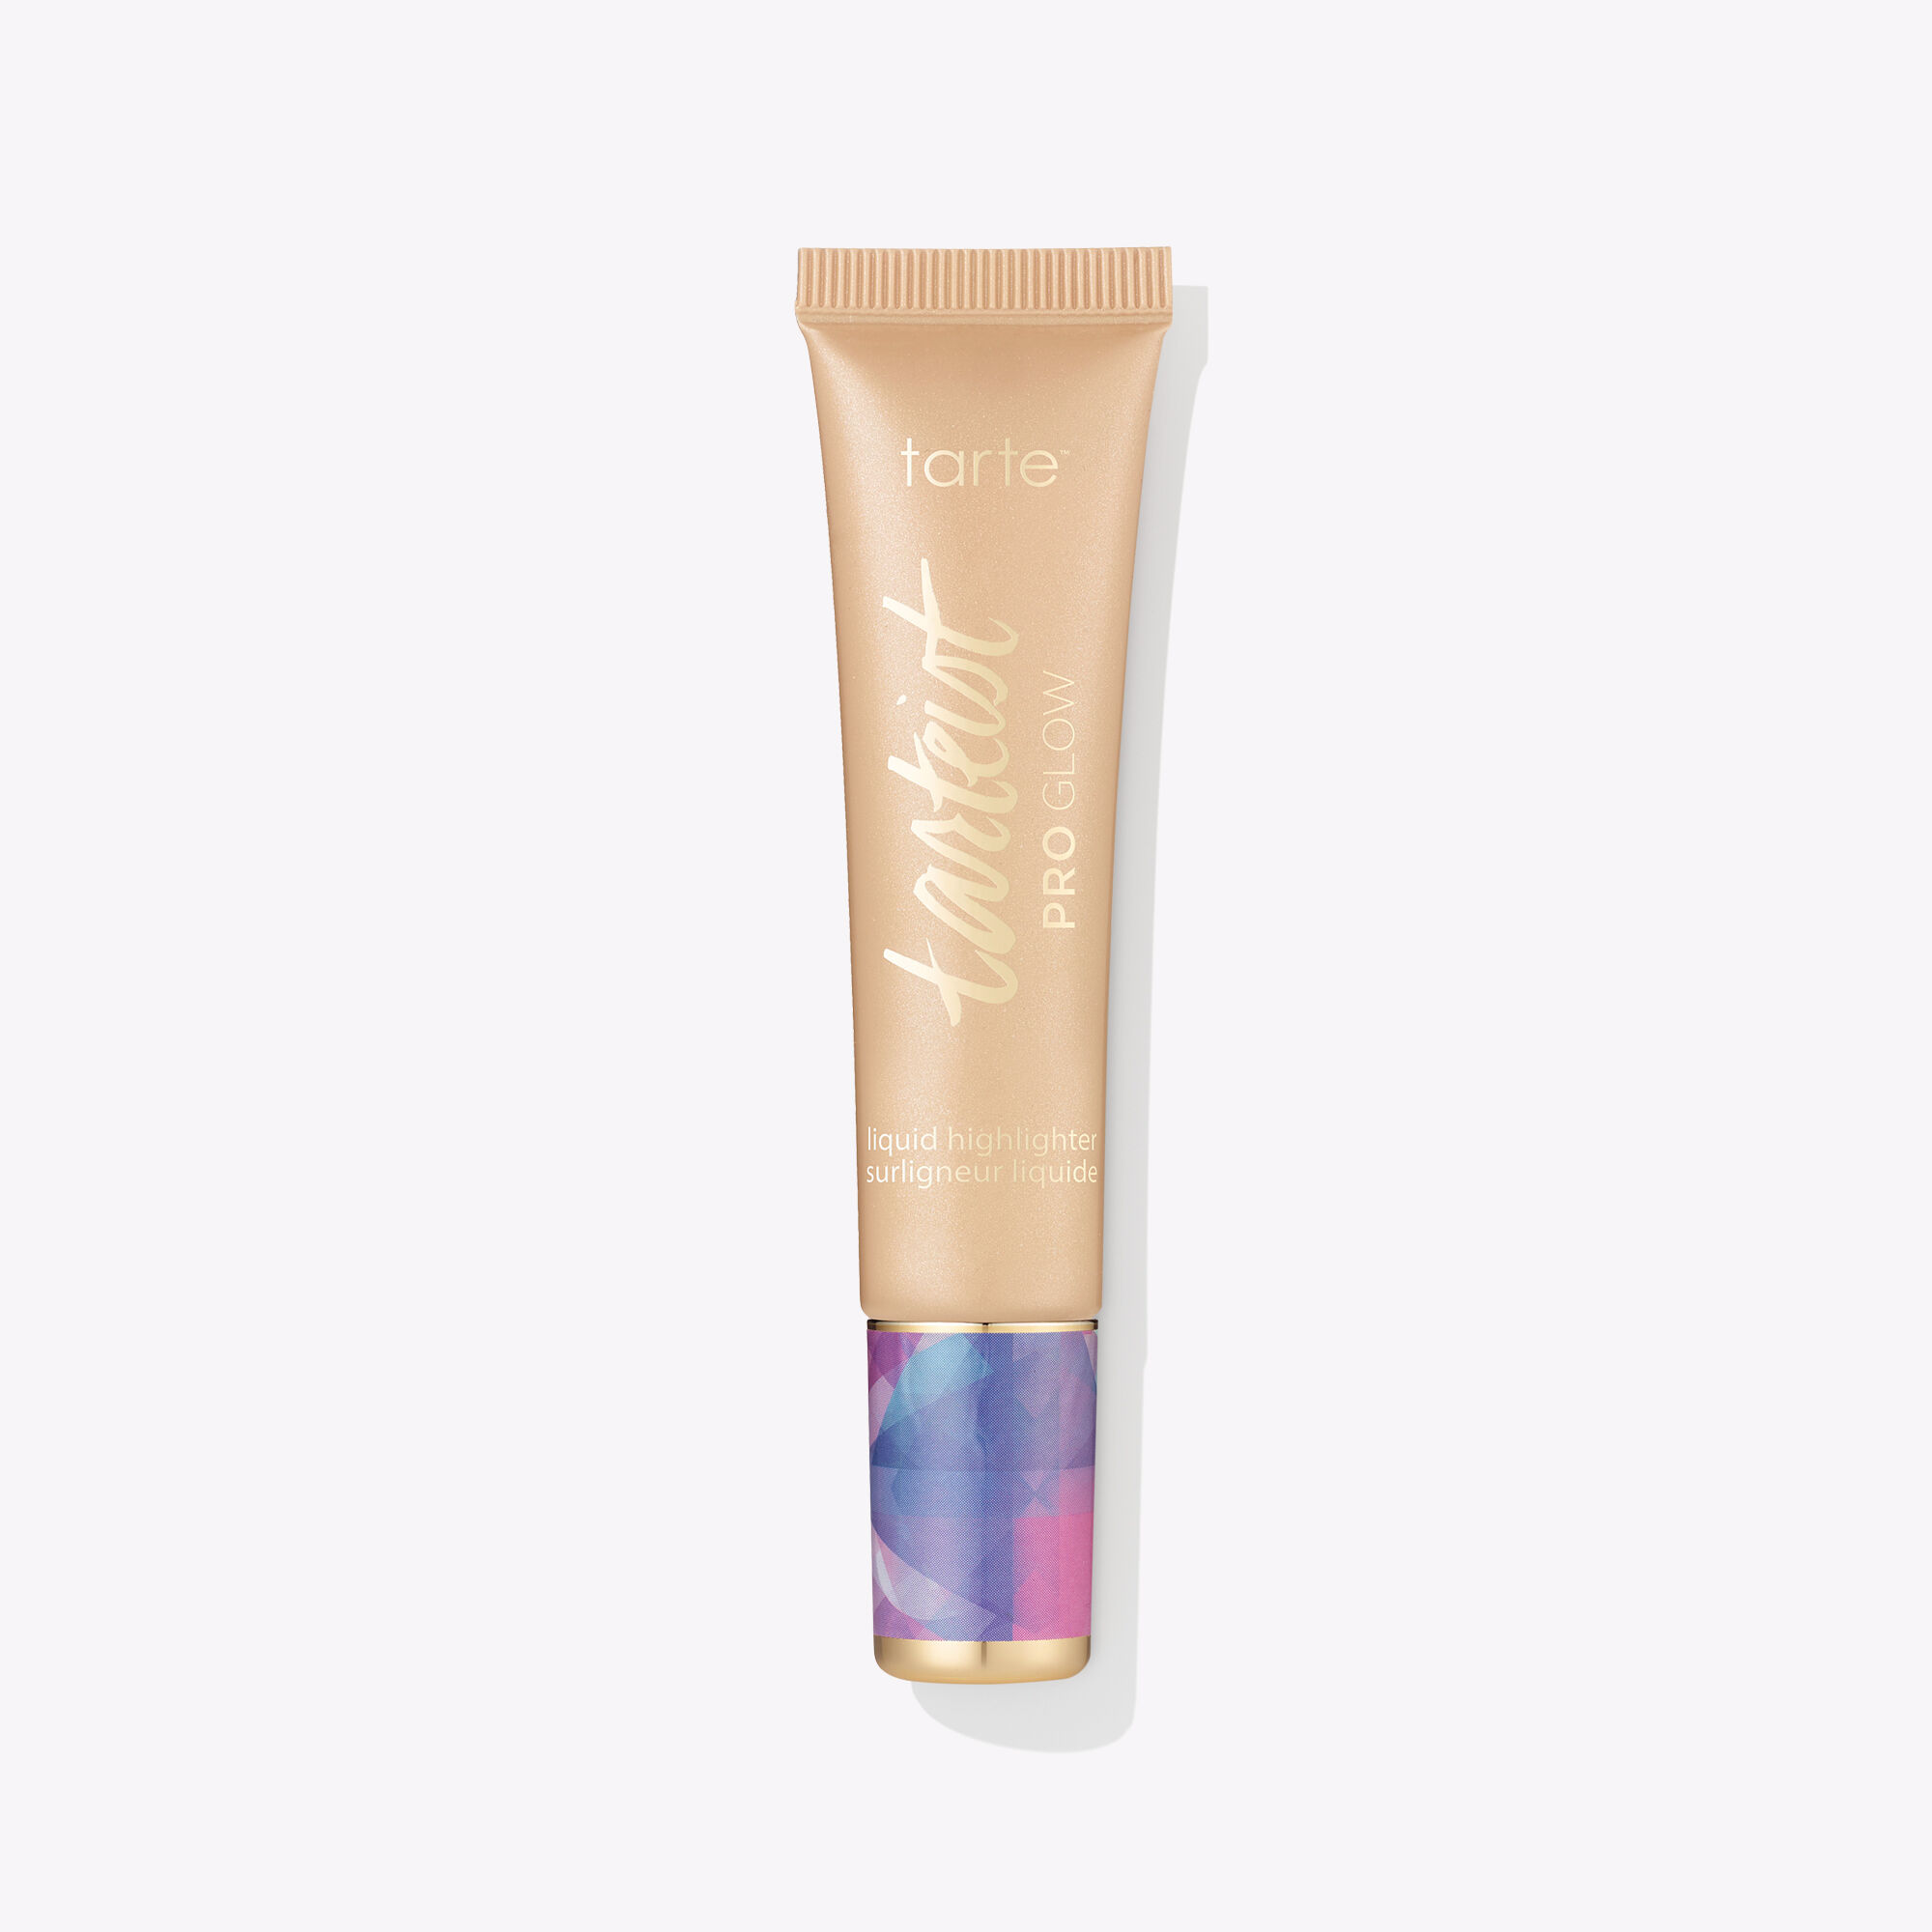 tarted limited edition pro glow highligher